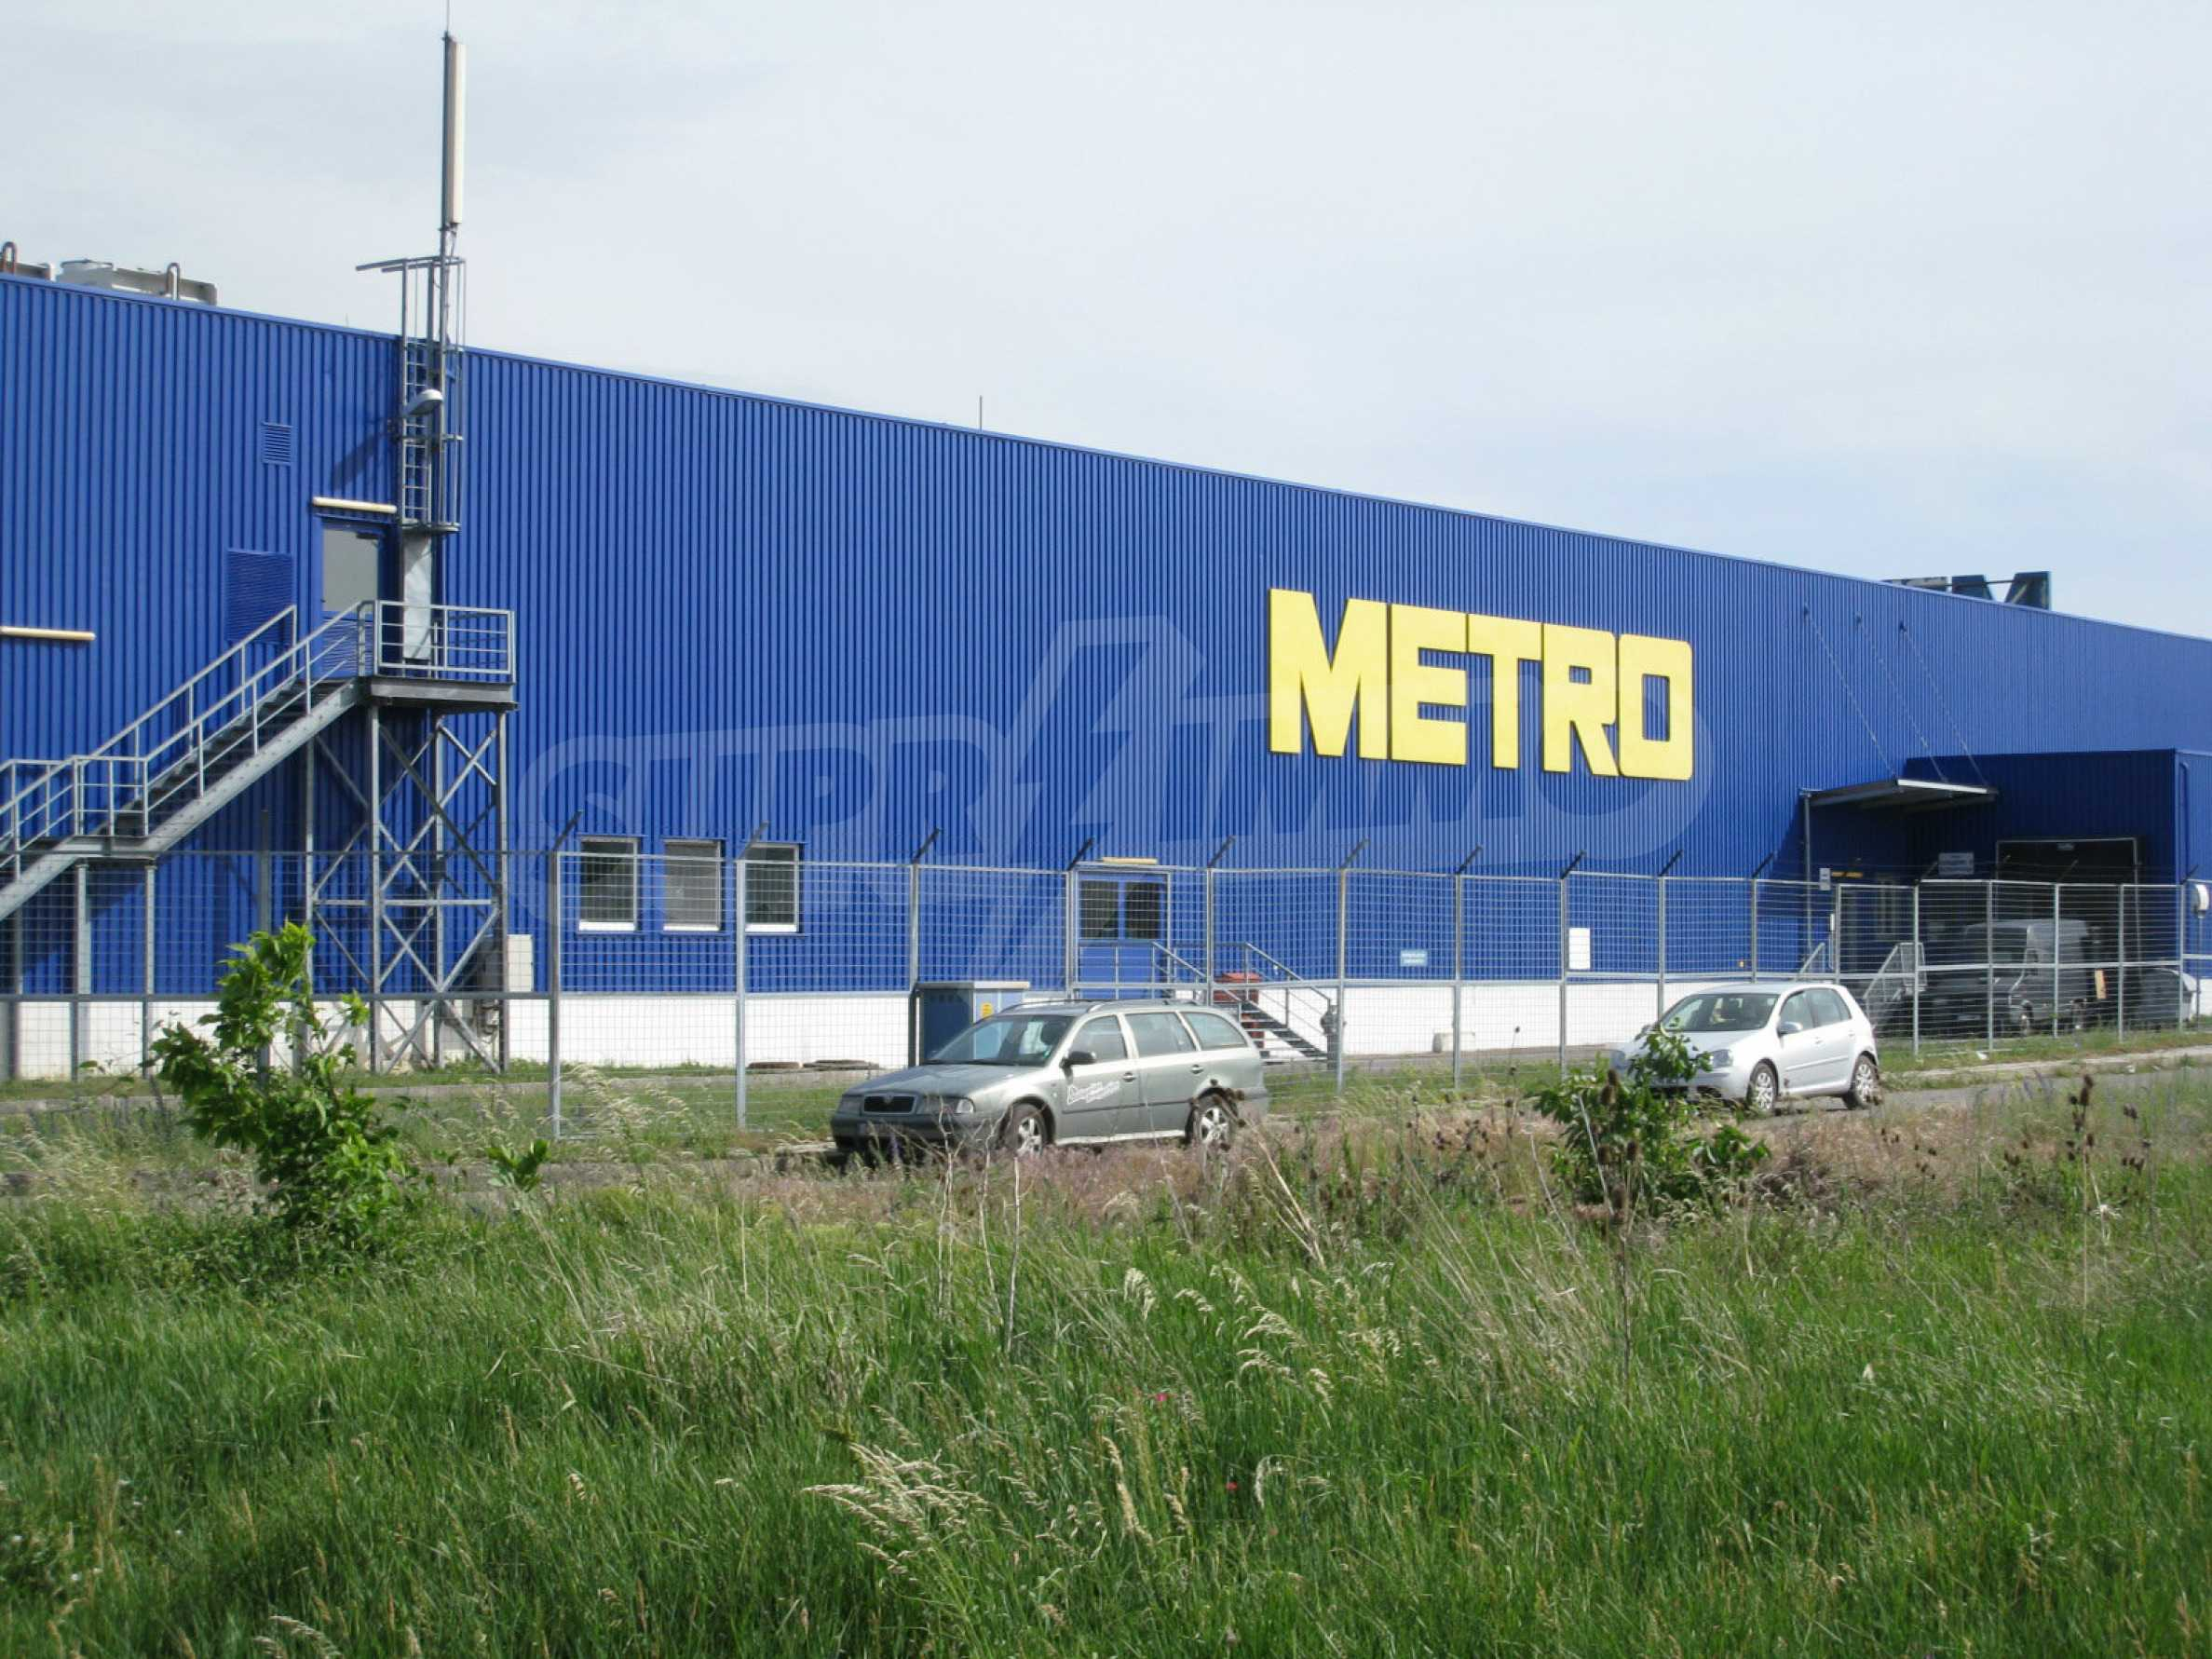 Investment land near the Metro store at Europe Blvd.